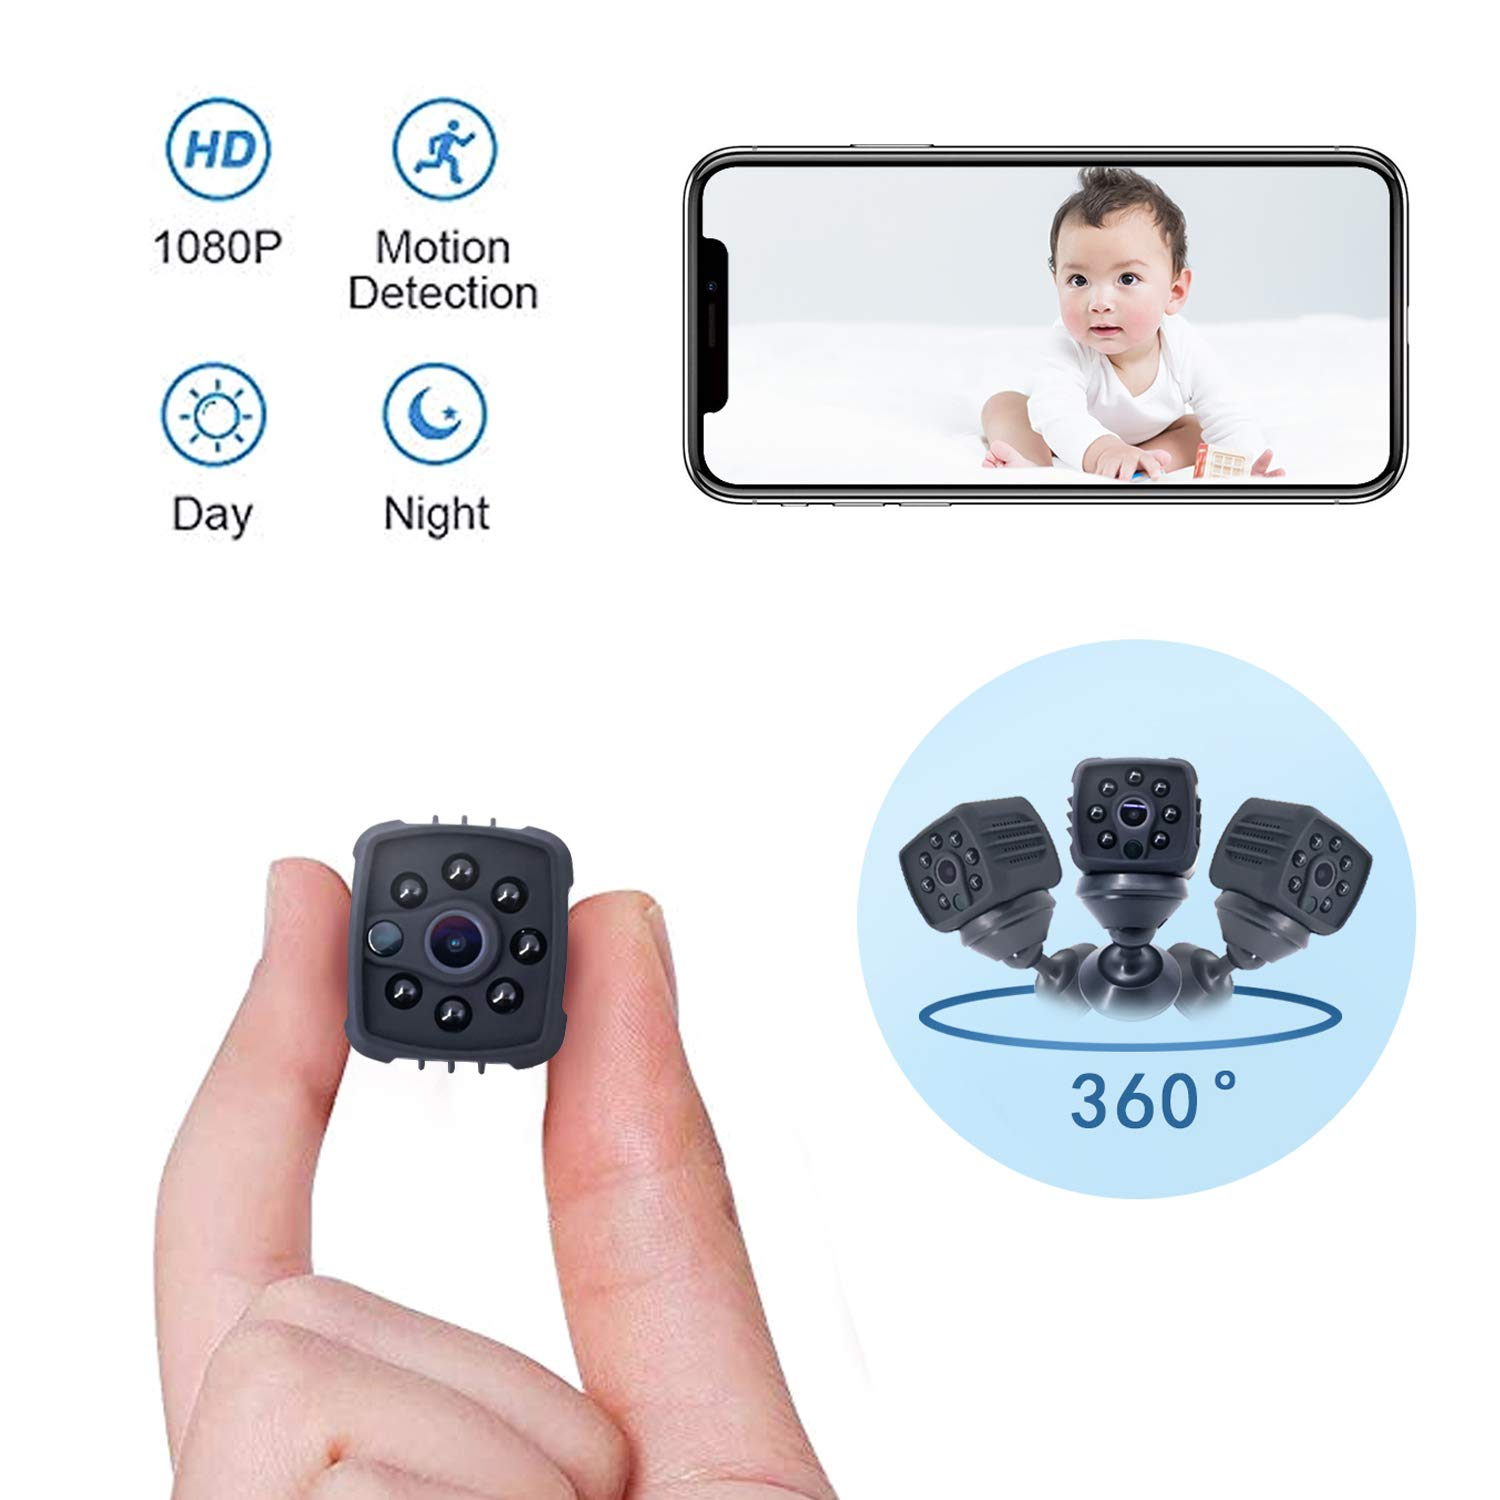 Portable Mini Spy Camera Hidden,1080P Wireless Nanny Camera with Cell Phone App,Night Vision and Motion Detection Remote Monitoring-Security for Pet,Baby,Indoor,Home and Office(Black) by Athors